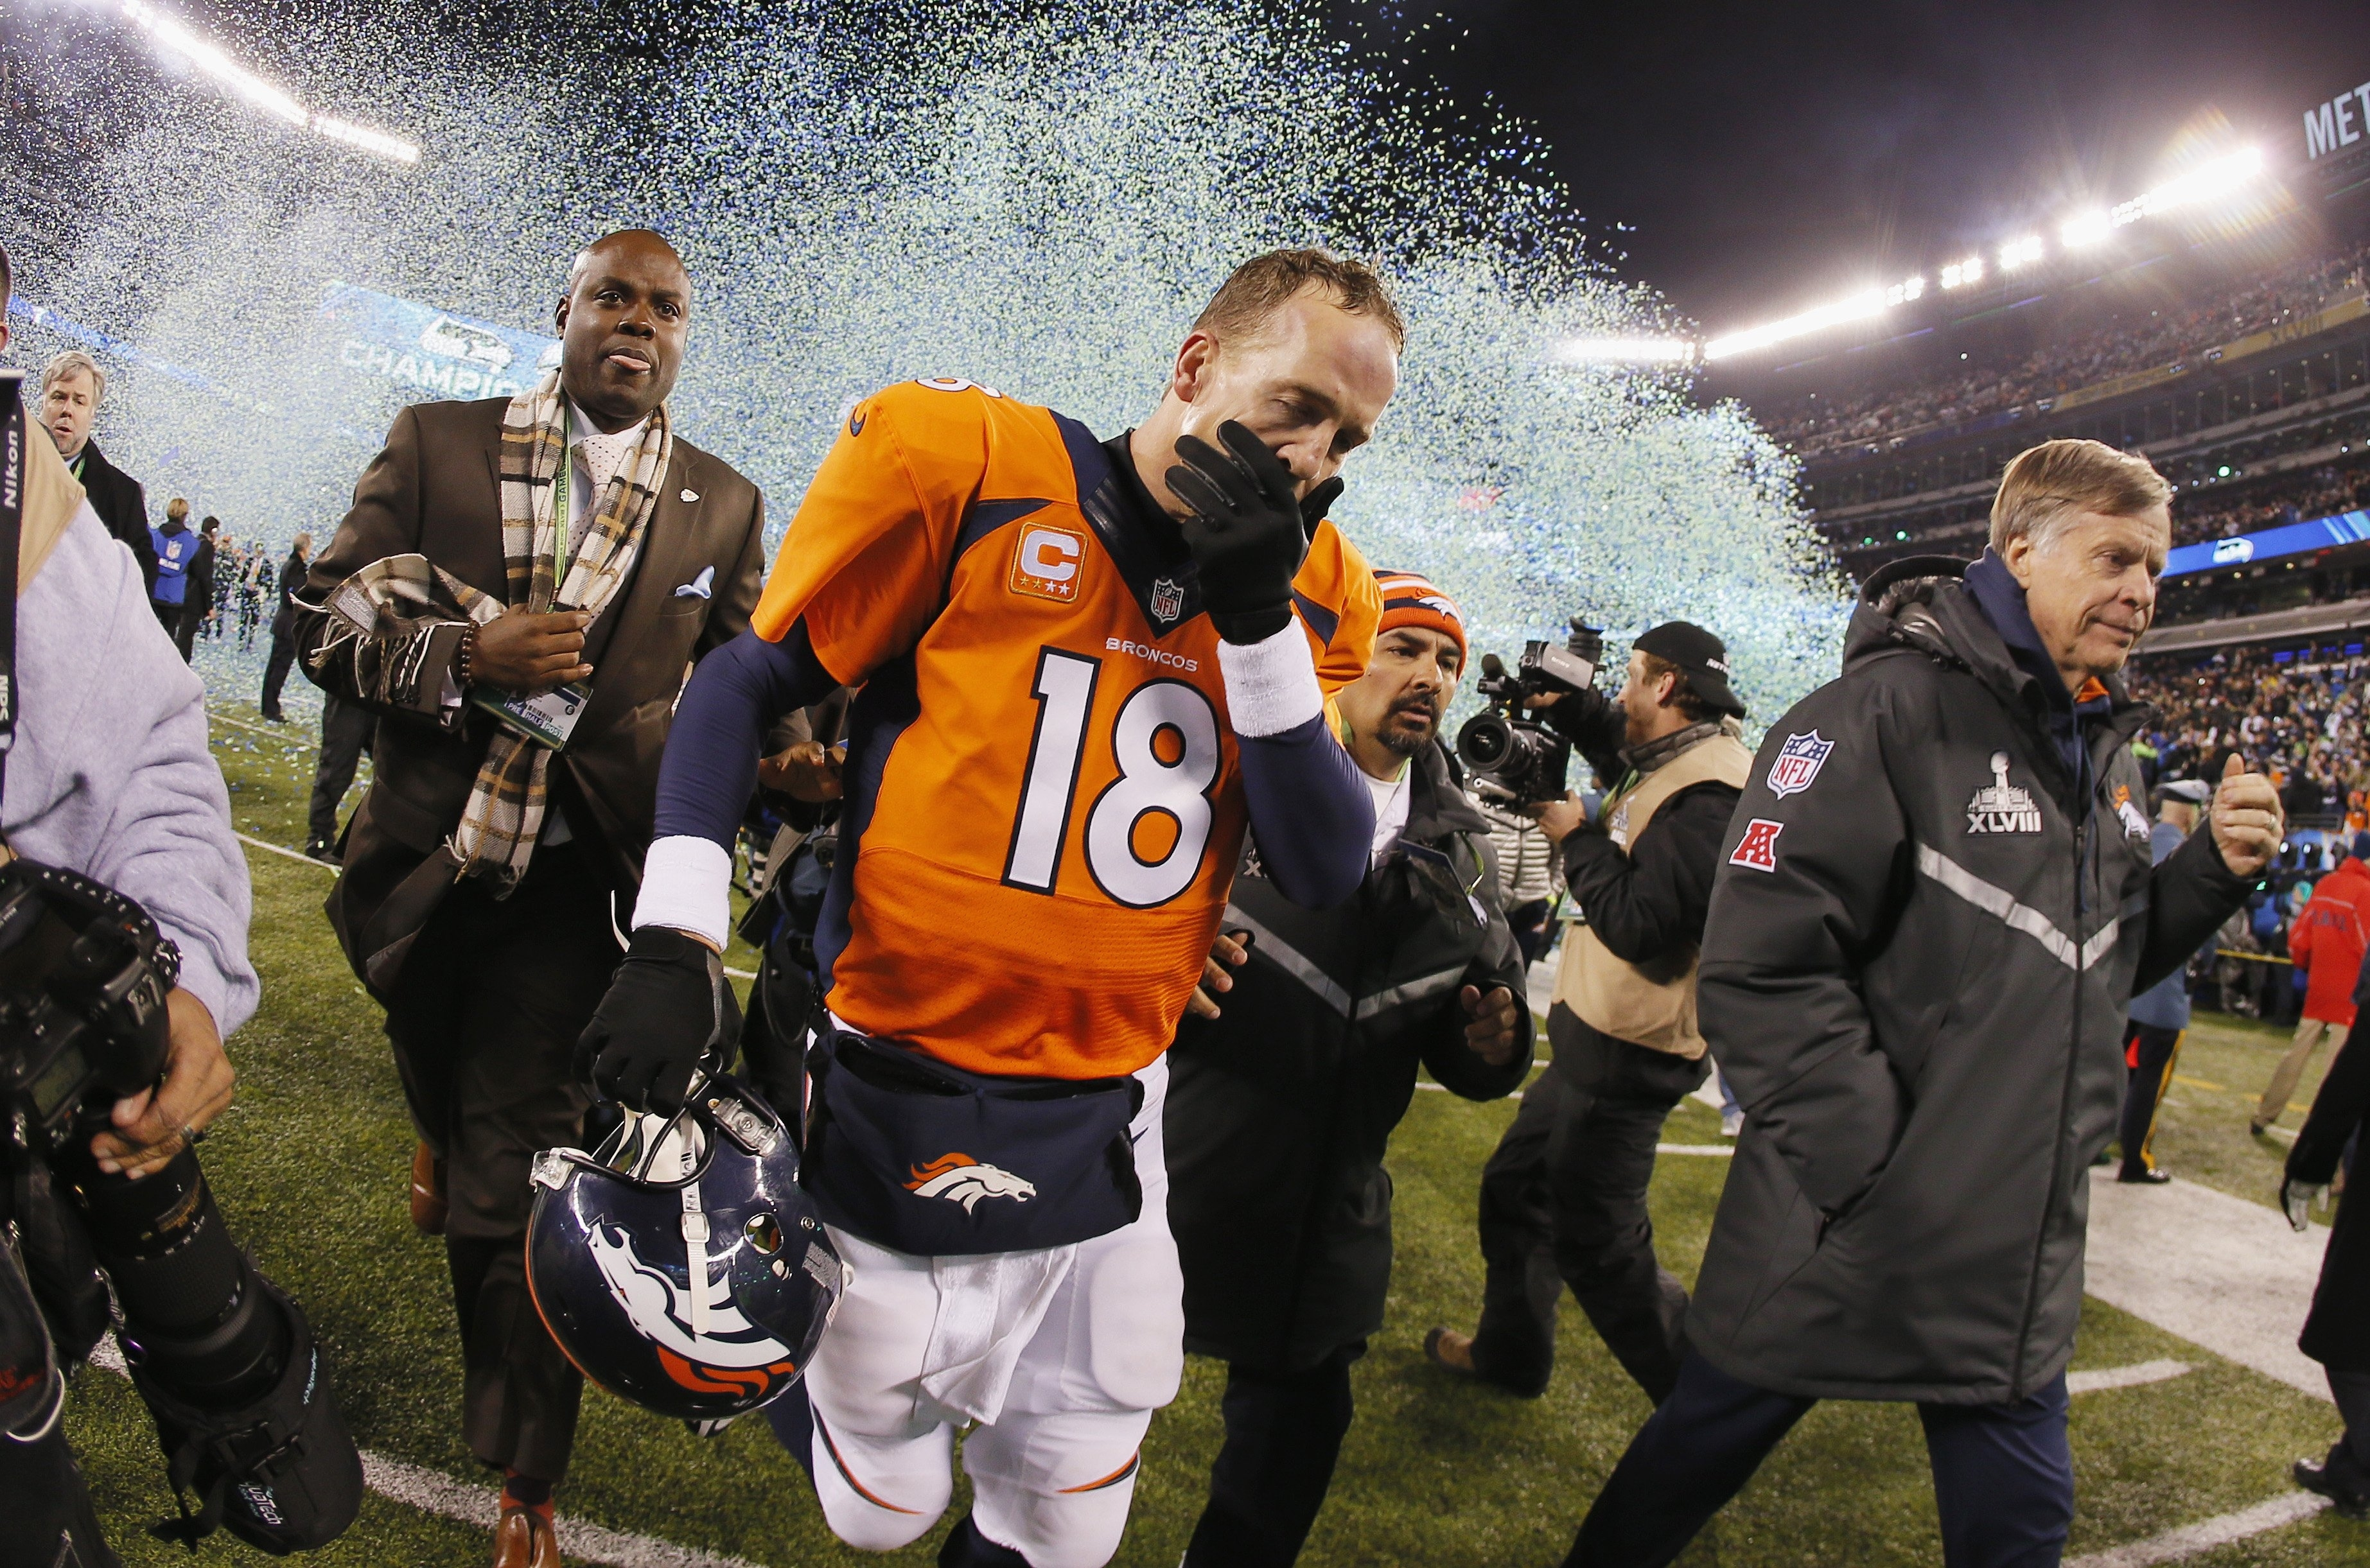 Peyton Manning Needs That Second Super Bowl | Time regarding Peyton Manning Super Bowl